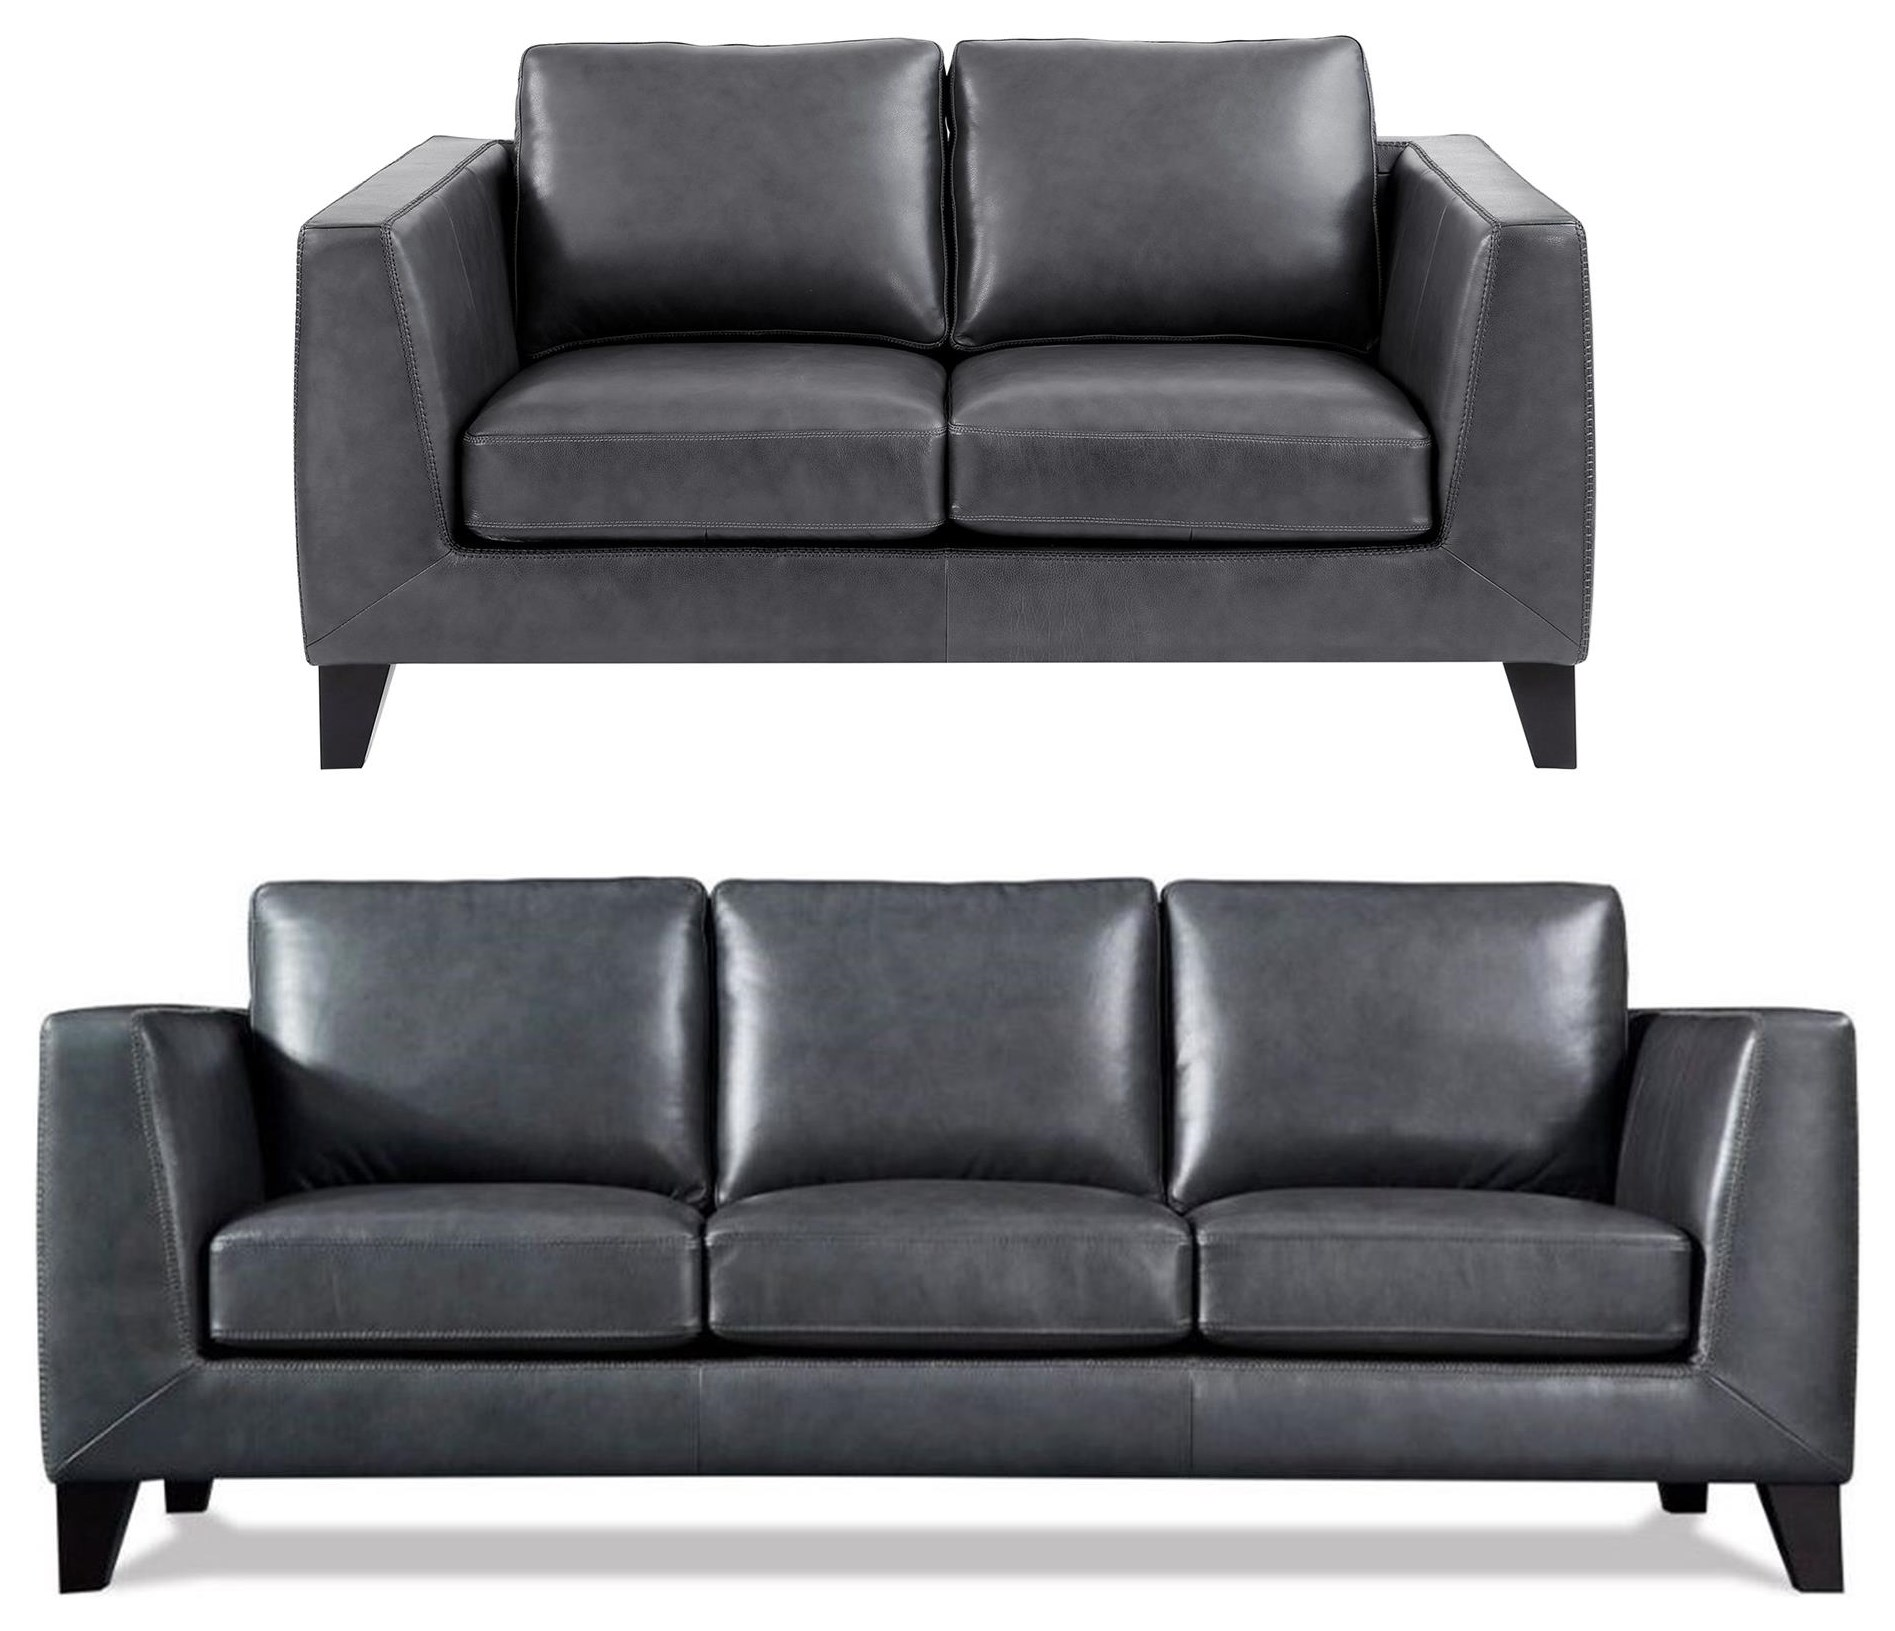 Chic 2PC Leather Sofa & Loveseat Set at Rotmans